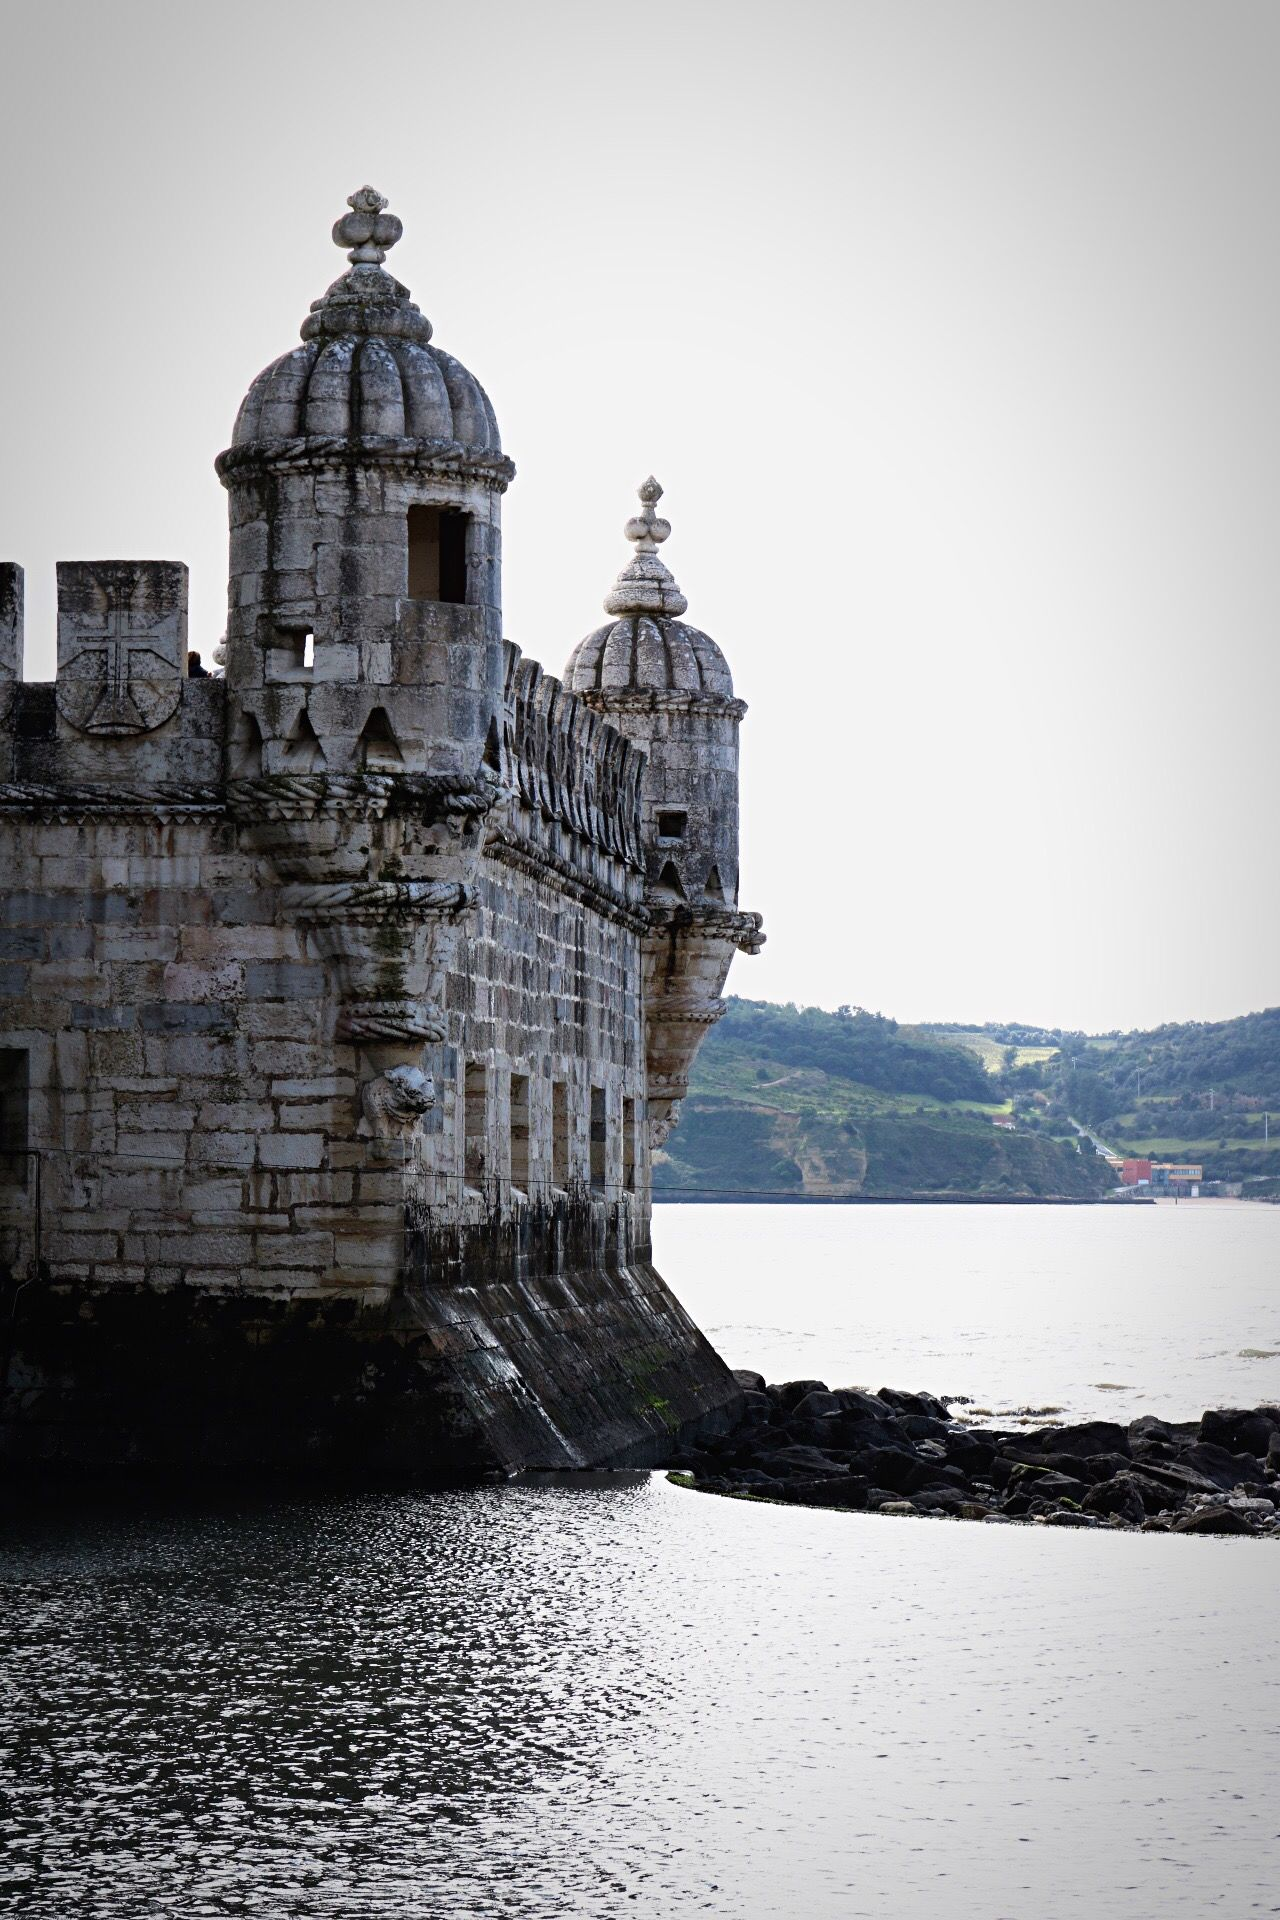 Arch Architecture Architecture Architecture_collection Belem Tower Belém Day EyeEm Best Shots History No People Outdoors Sea Streetphotography Taking Photos Tower Travel Destinations Water Water Reflections Water_collection